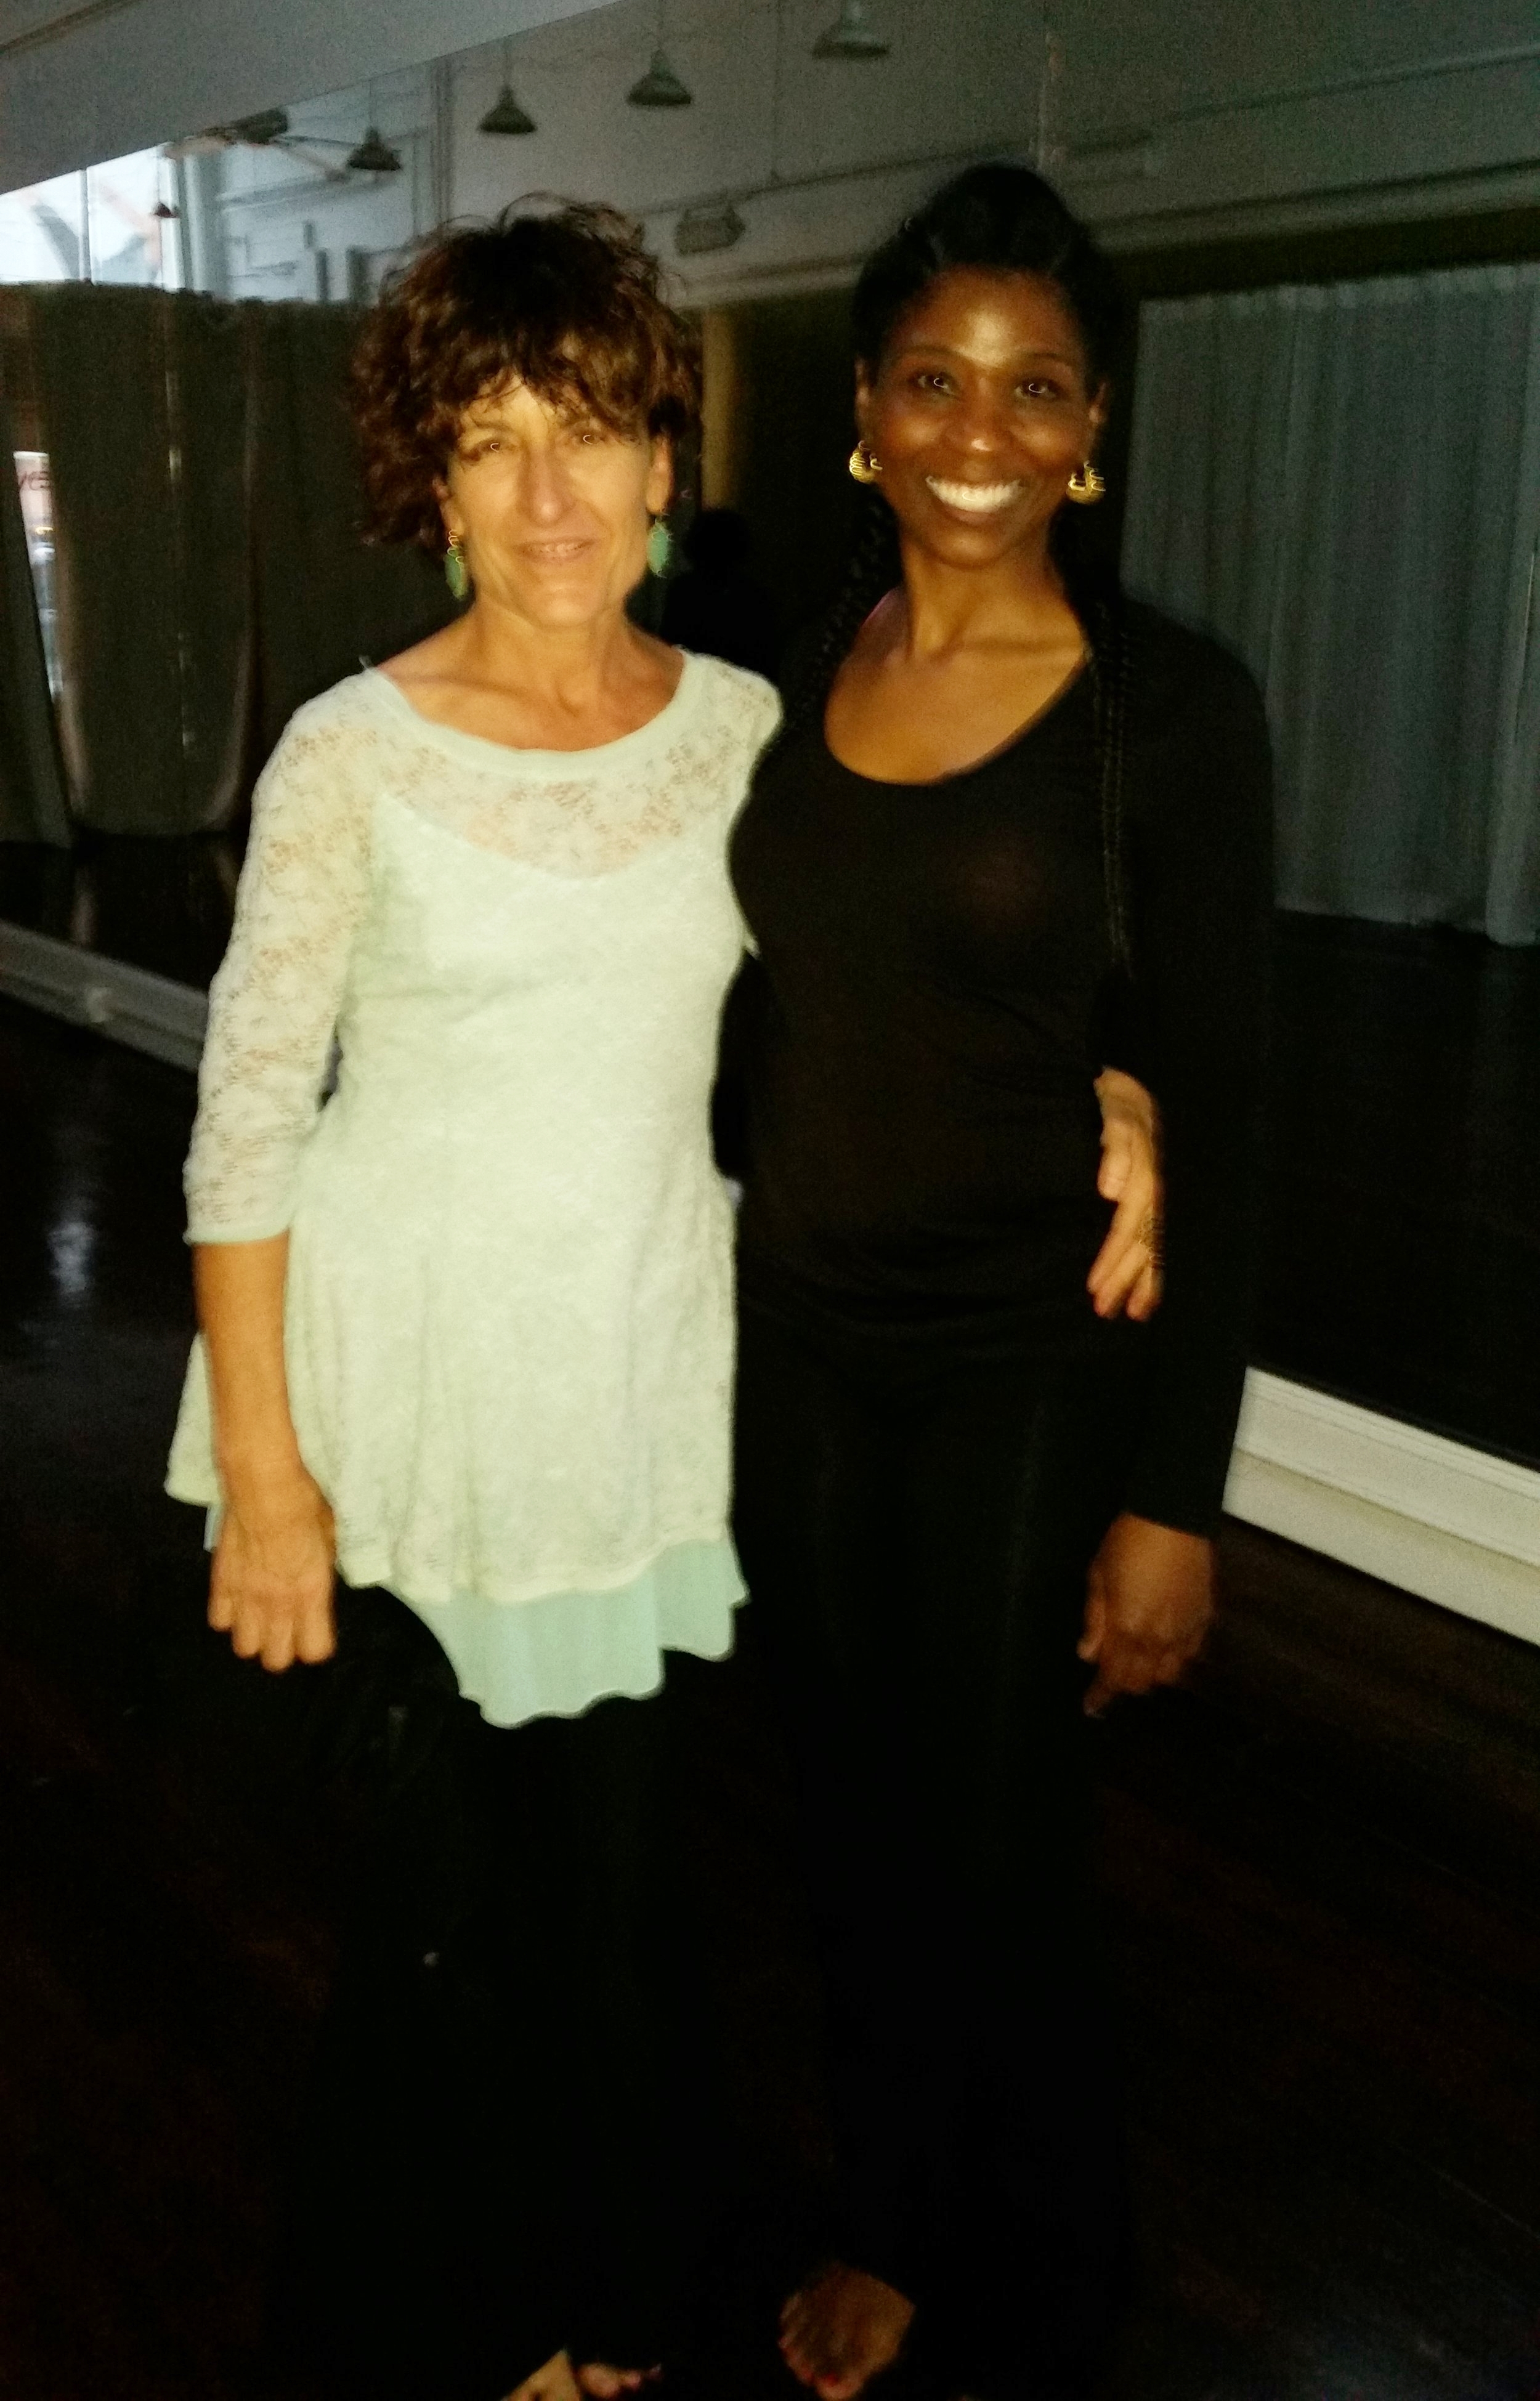 Nia Routine Immersion with France-Laude Gohard (Nia Teacher/Trainer)